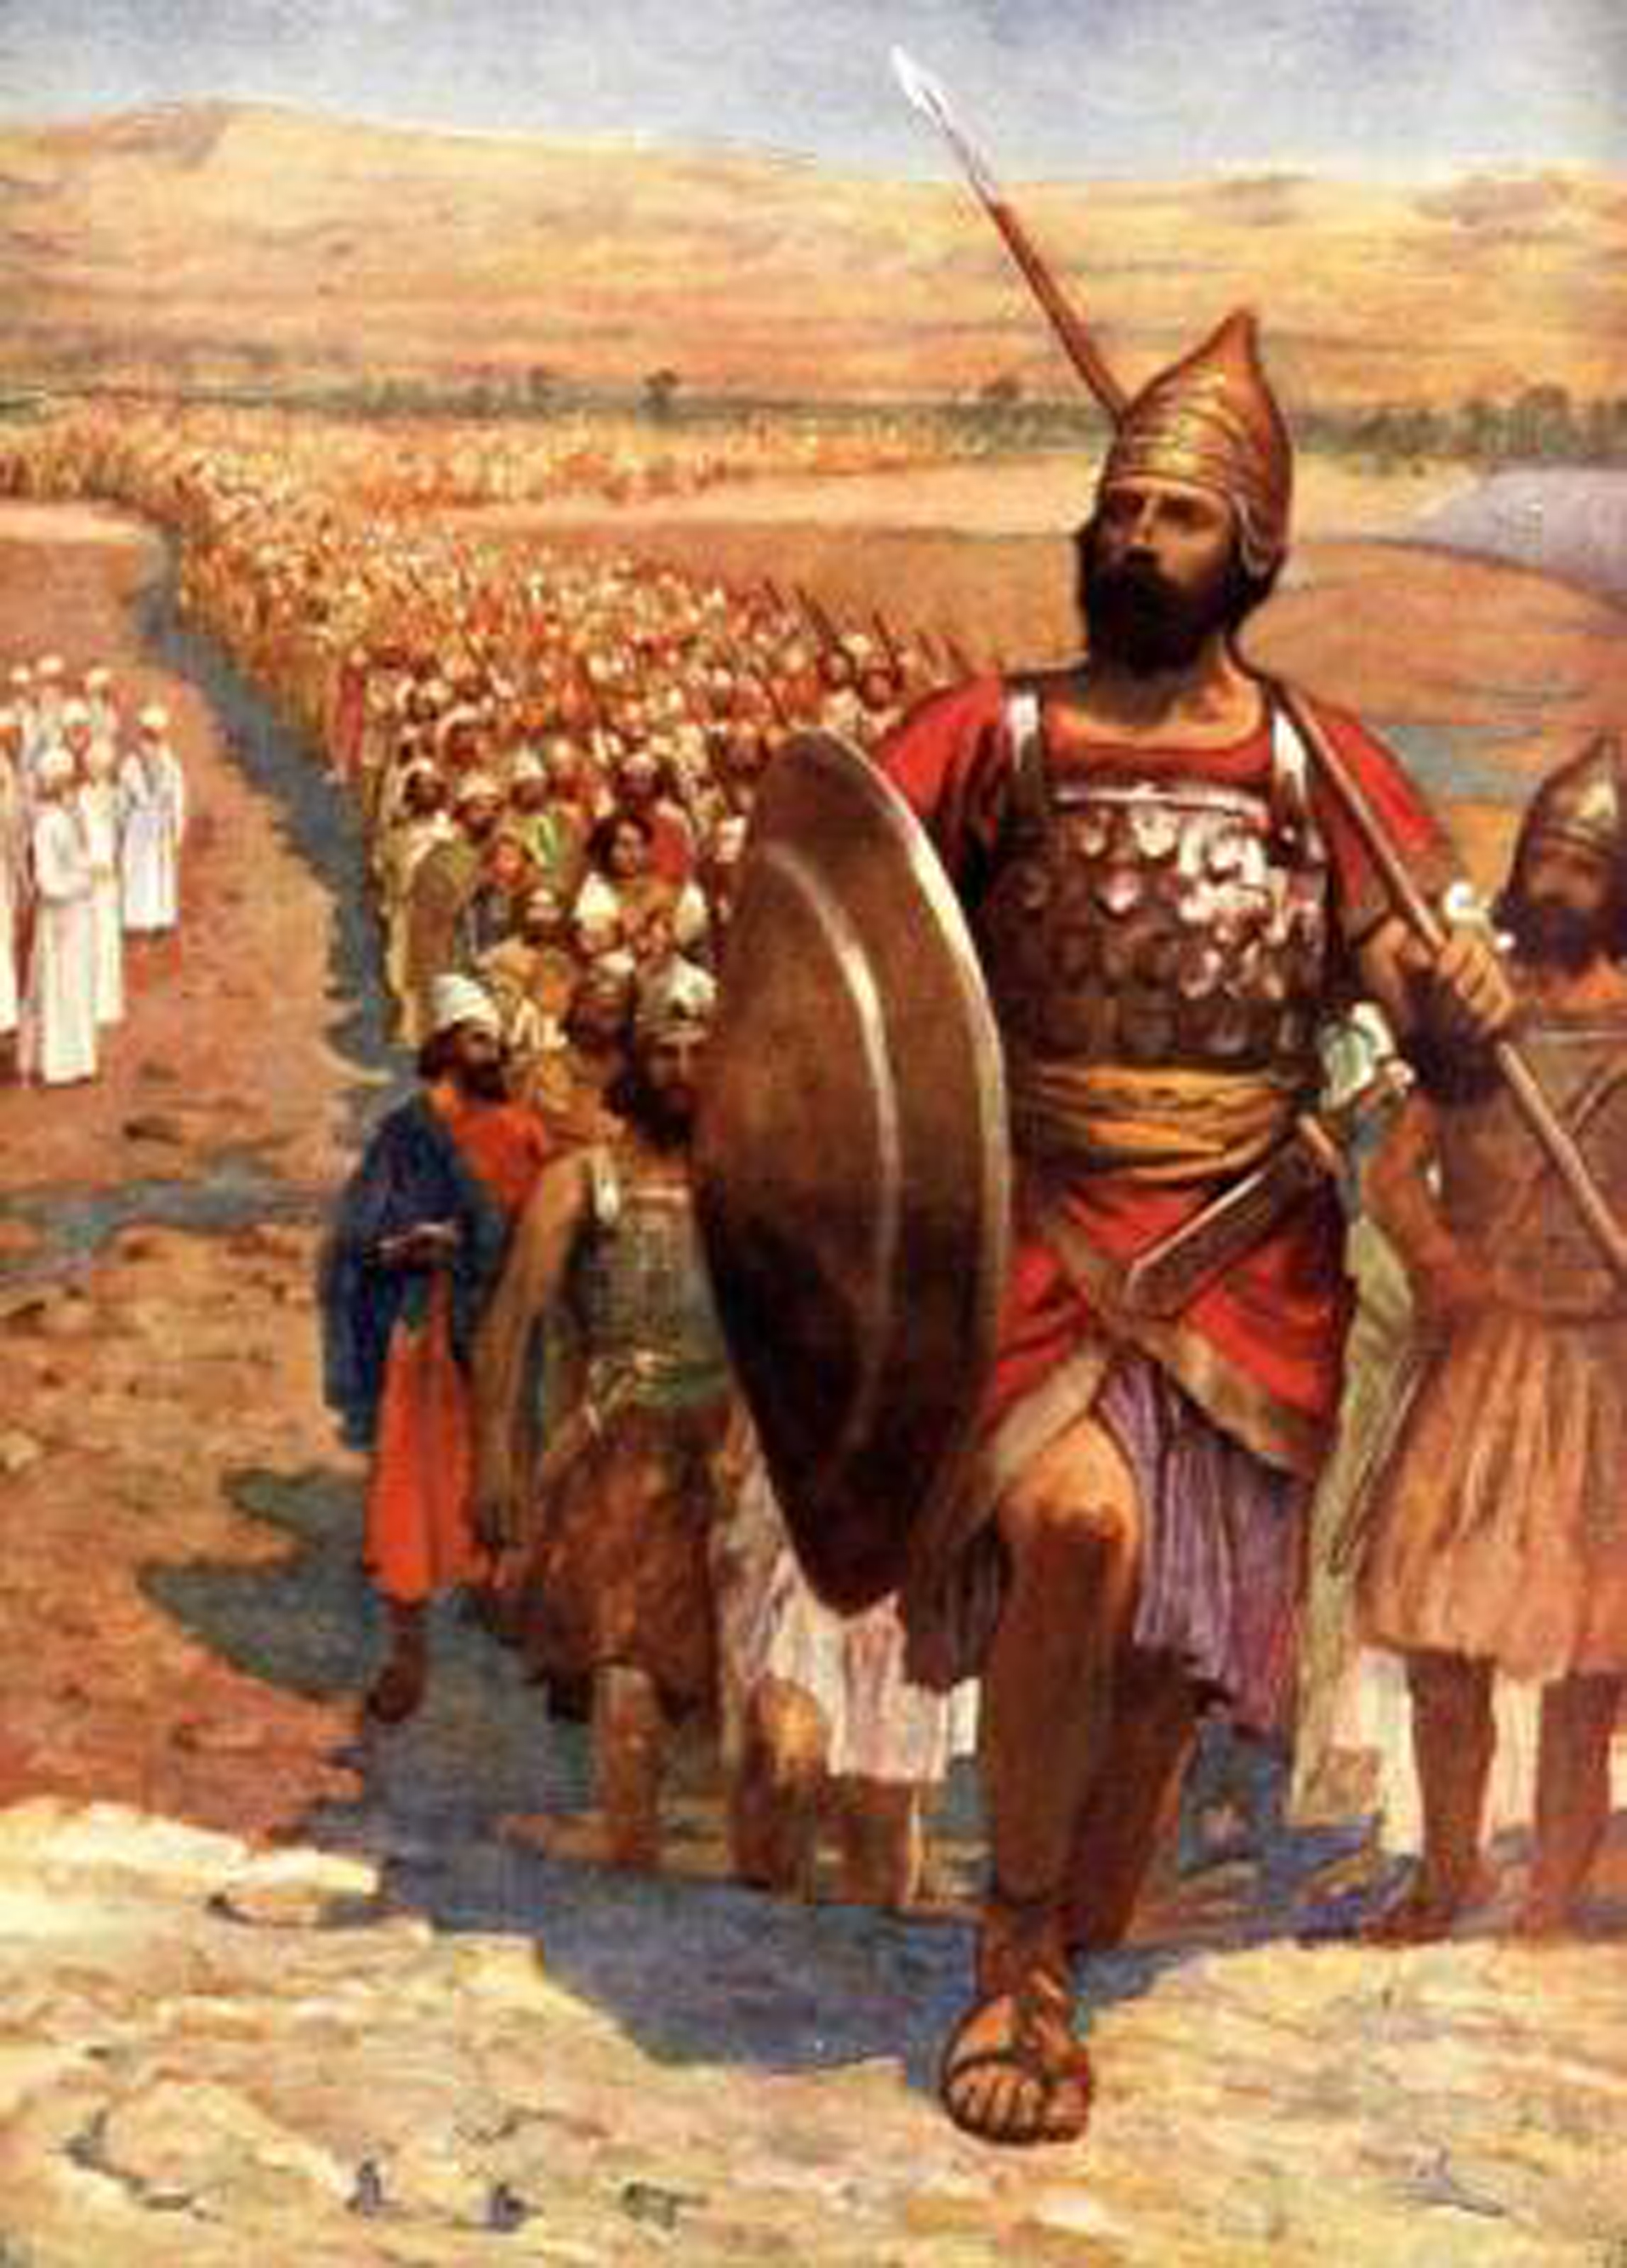 an overview of the religion of canaanites and ancient israelites The canaanites were people who lived in the land of canaan, an area which according to ancient texts may have included parts of modern-day israel, palestine, lebanon, syria and jordan.